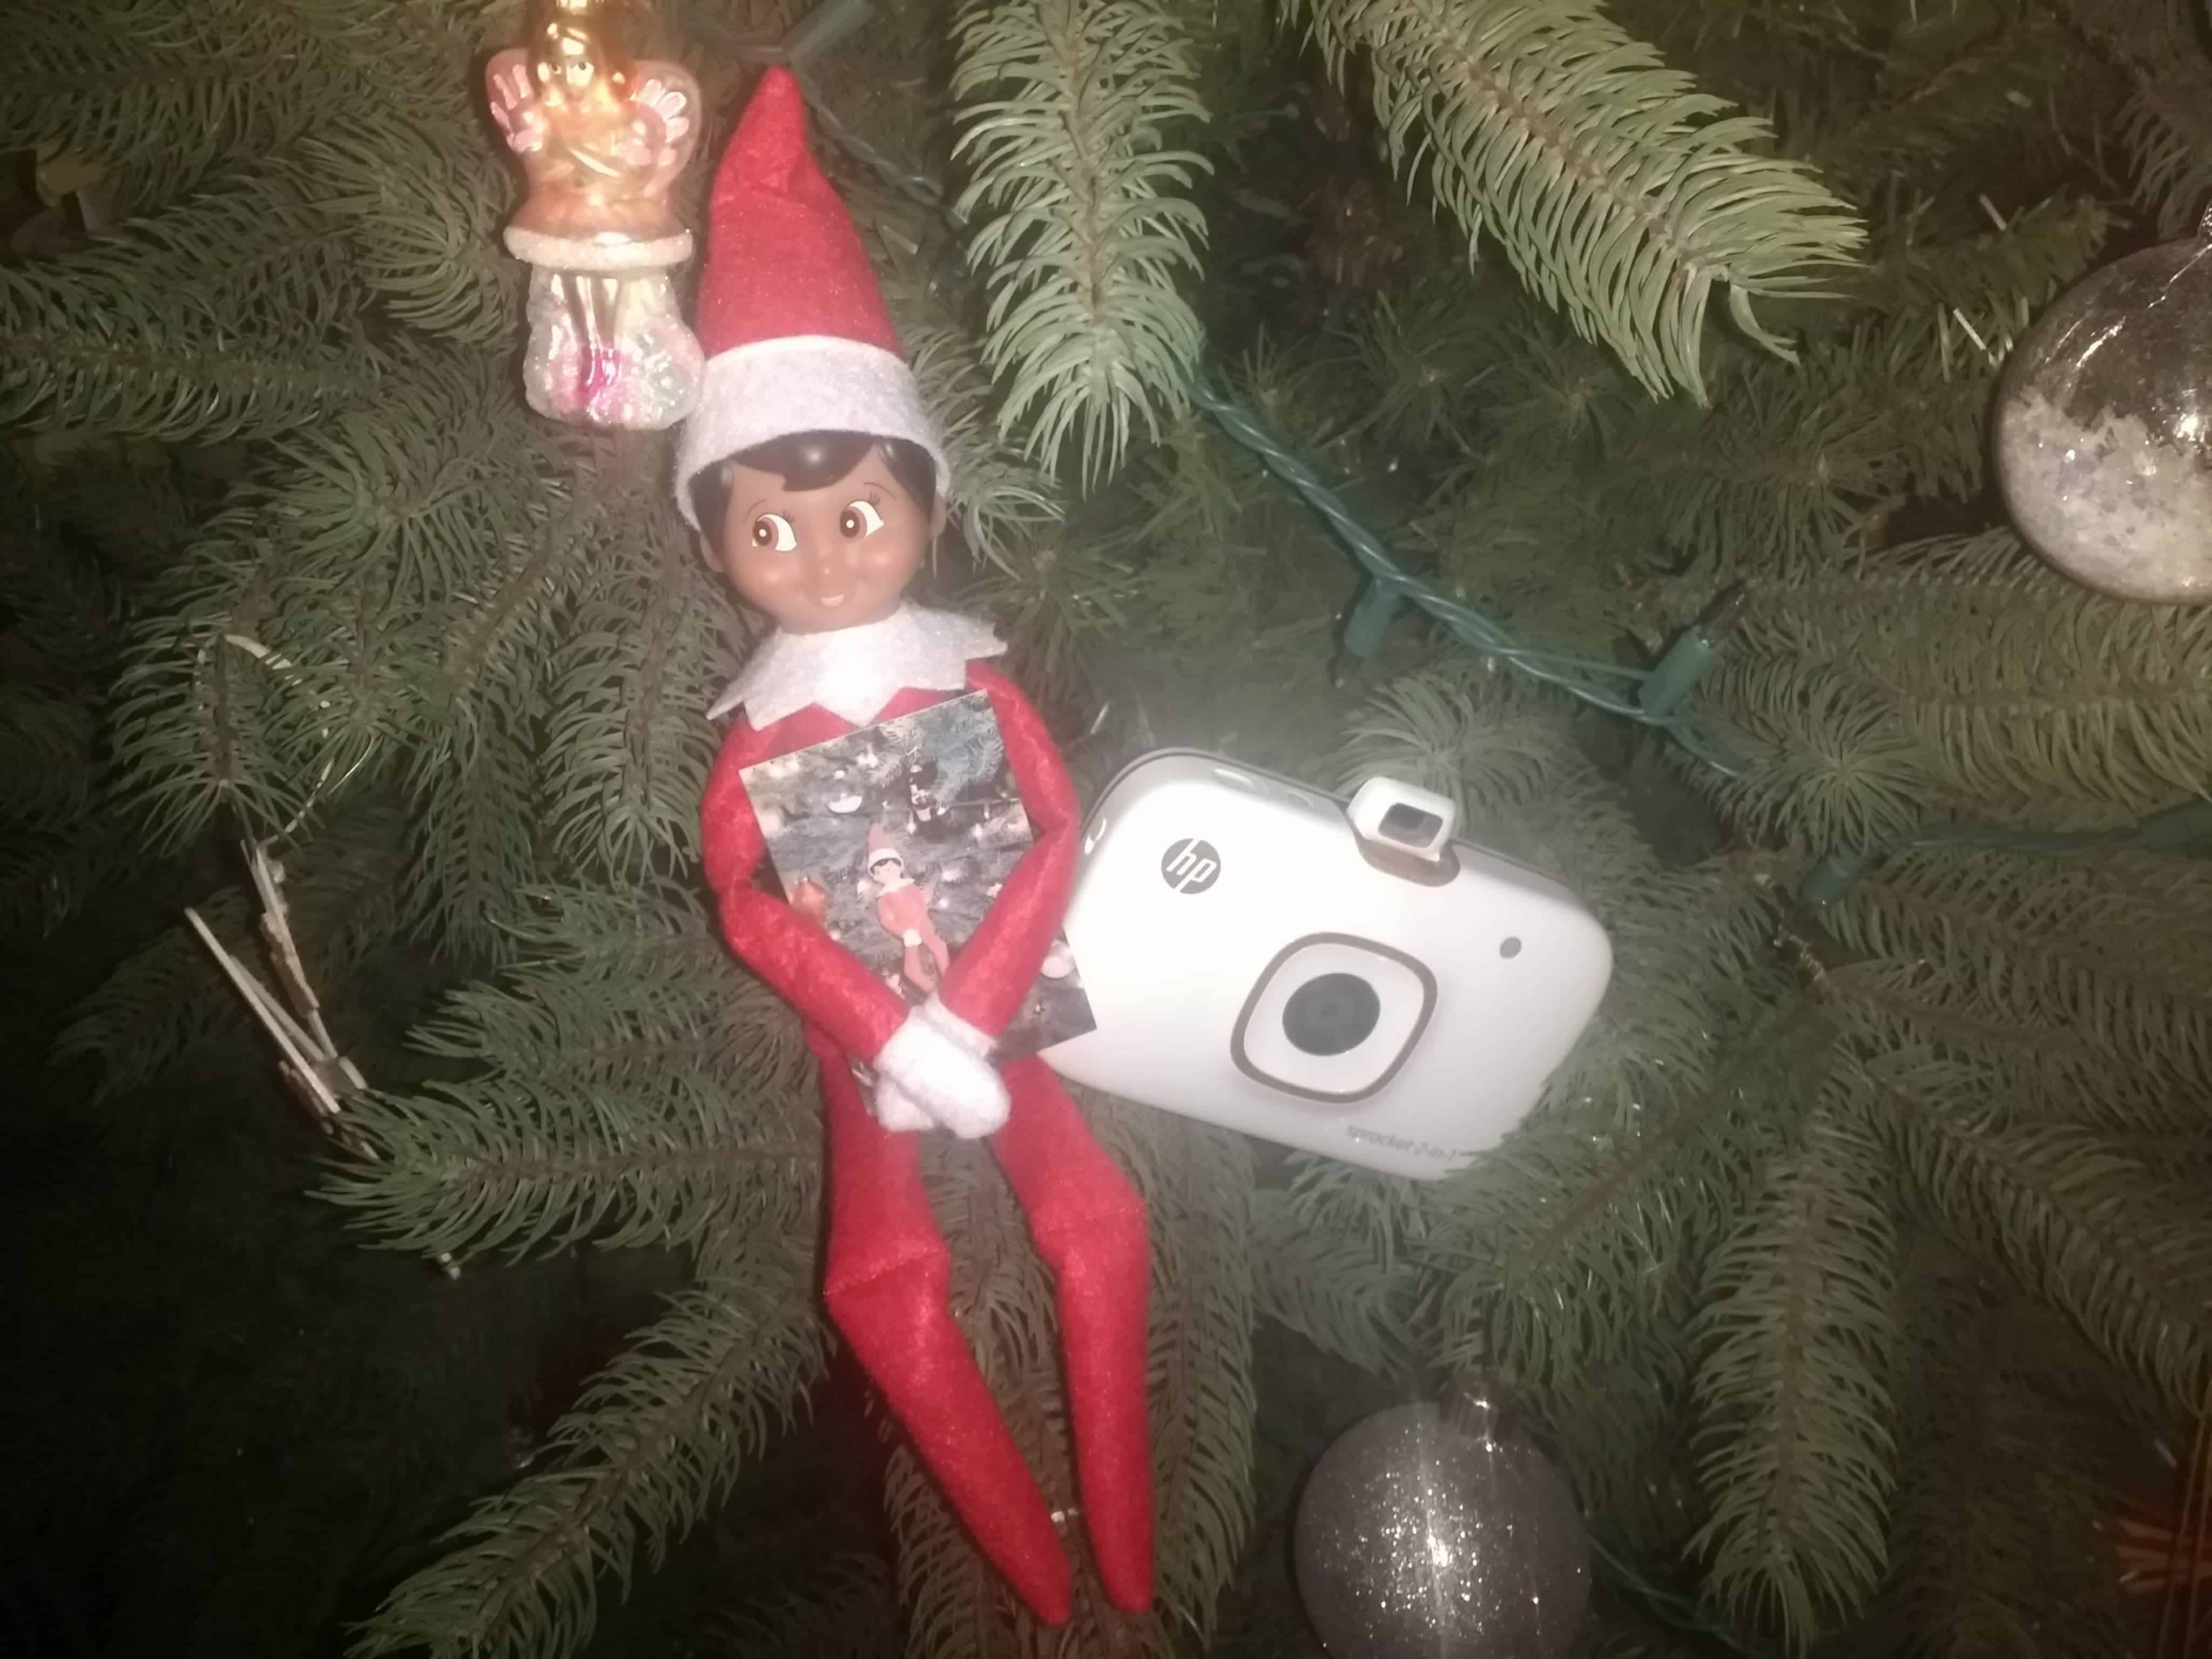 An easy #elfontheshelf idea- take an #elfie with the HP 2-in-1 Sprocket! #ad thesaltymamas.com